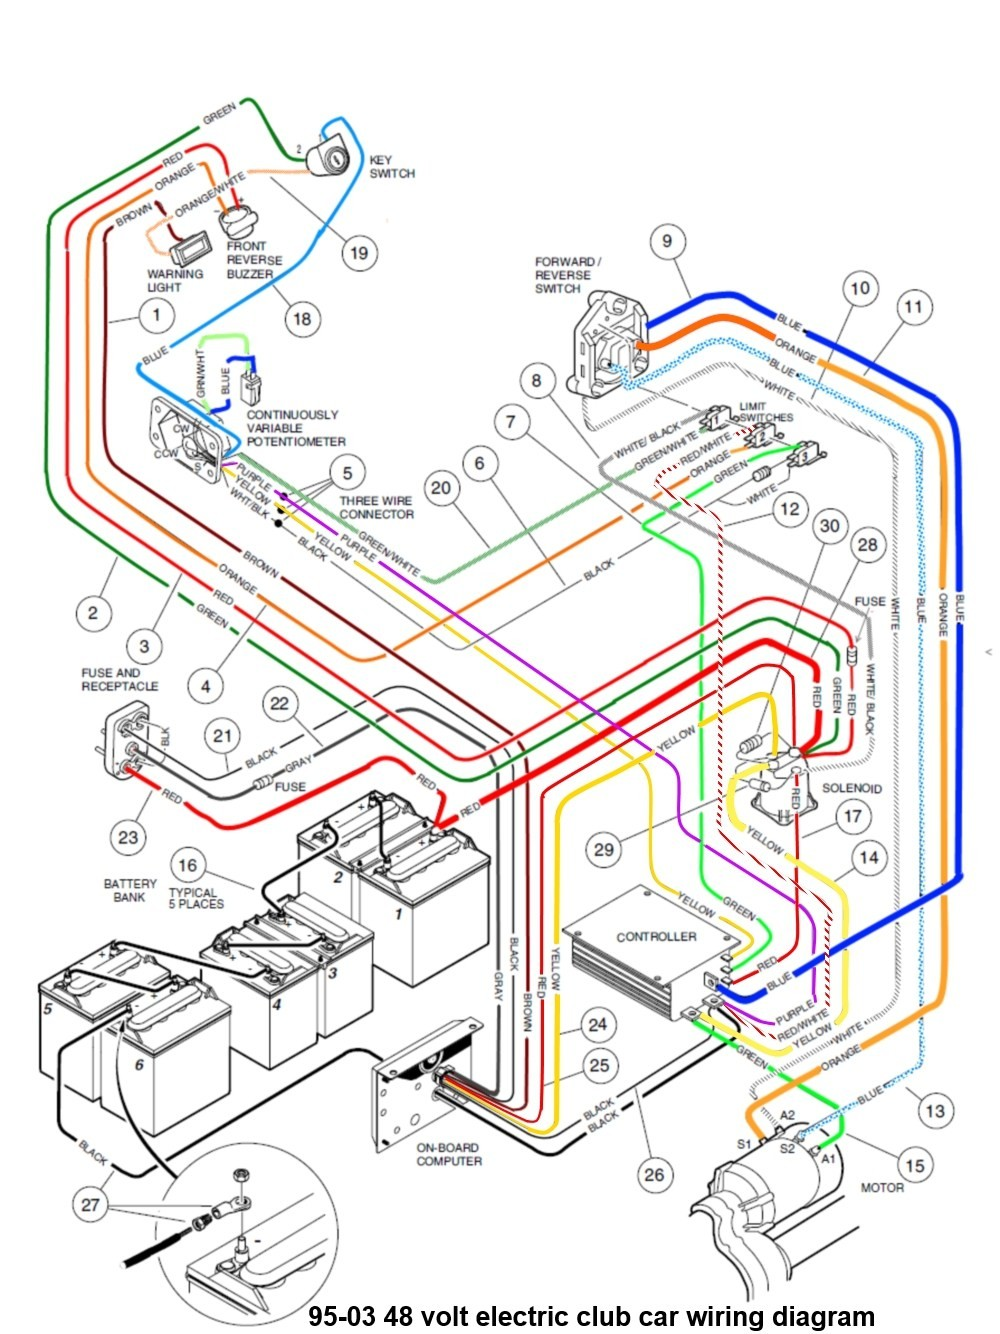 Ew 36 48 Volt Wiring Diagram All Kind Of Wiring Diagrams \u2022 Razor Scooter  Wiring Diagrams Ew 36 Electric Scooter Wiring Diagram